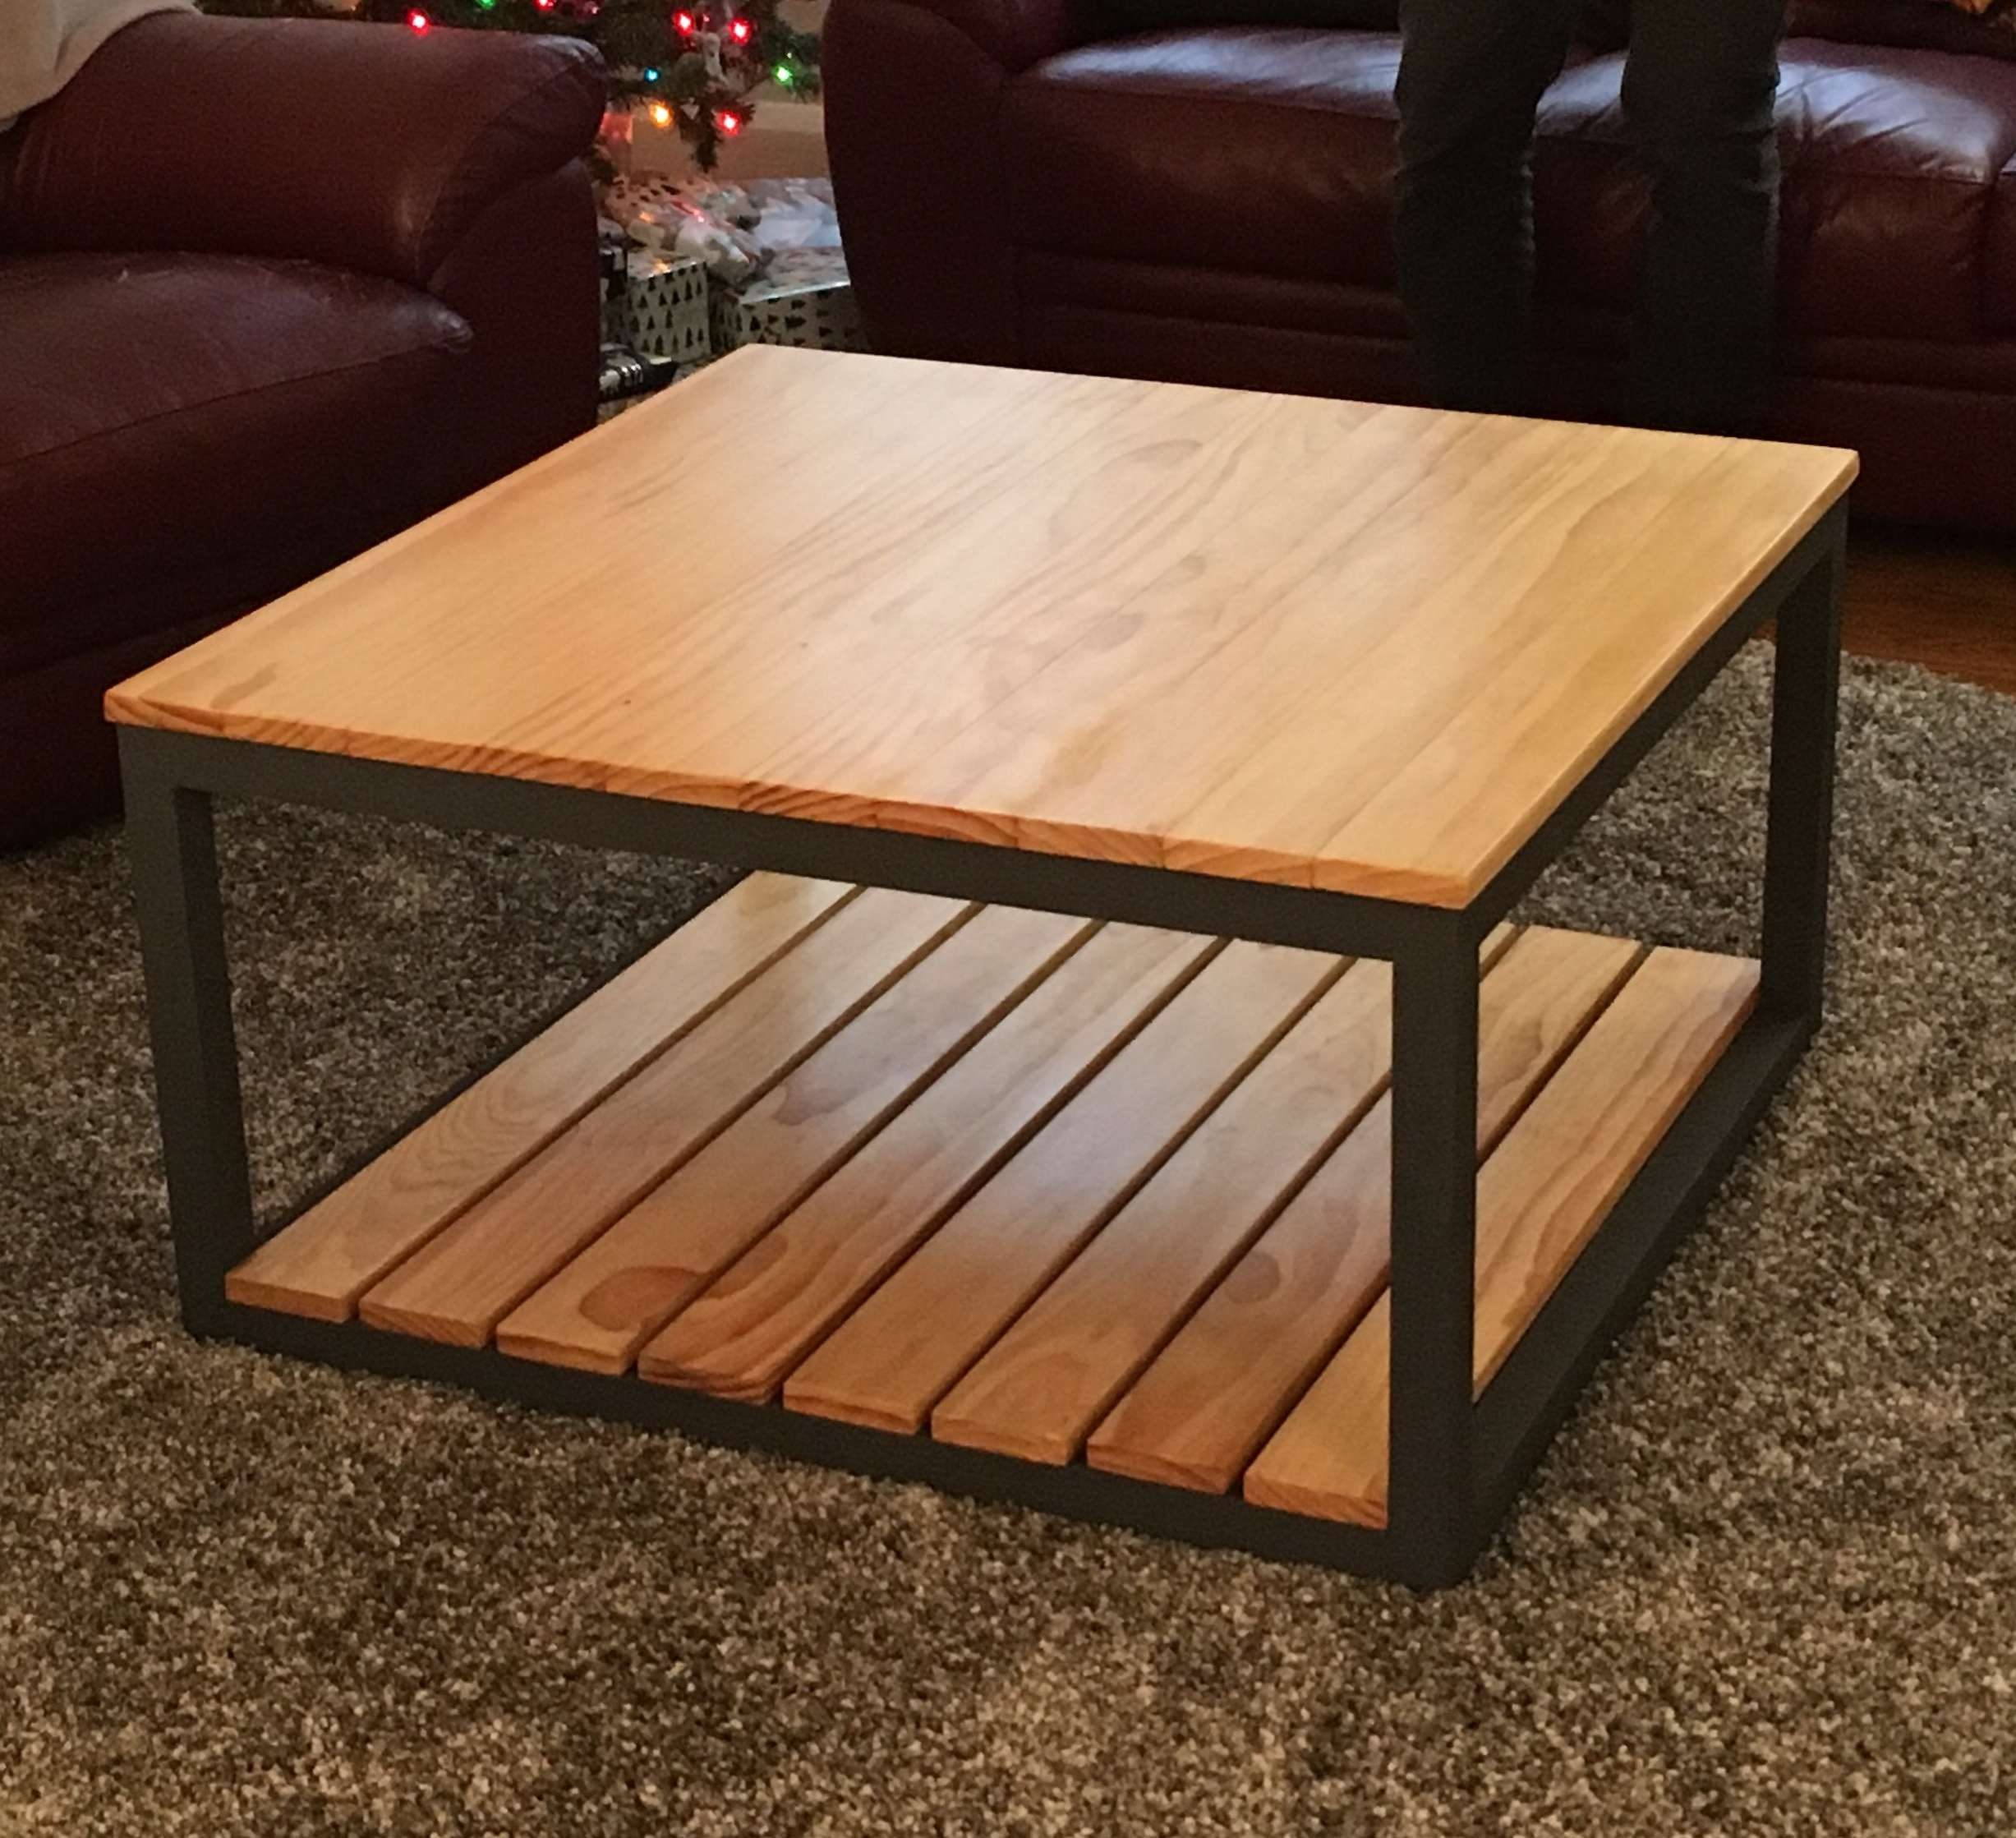 Modified Industrial Style Coffee Table W/ Bottom Shelf (View 11 of 20)